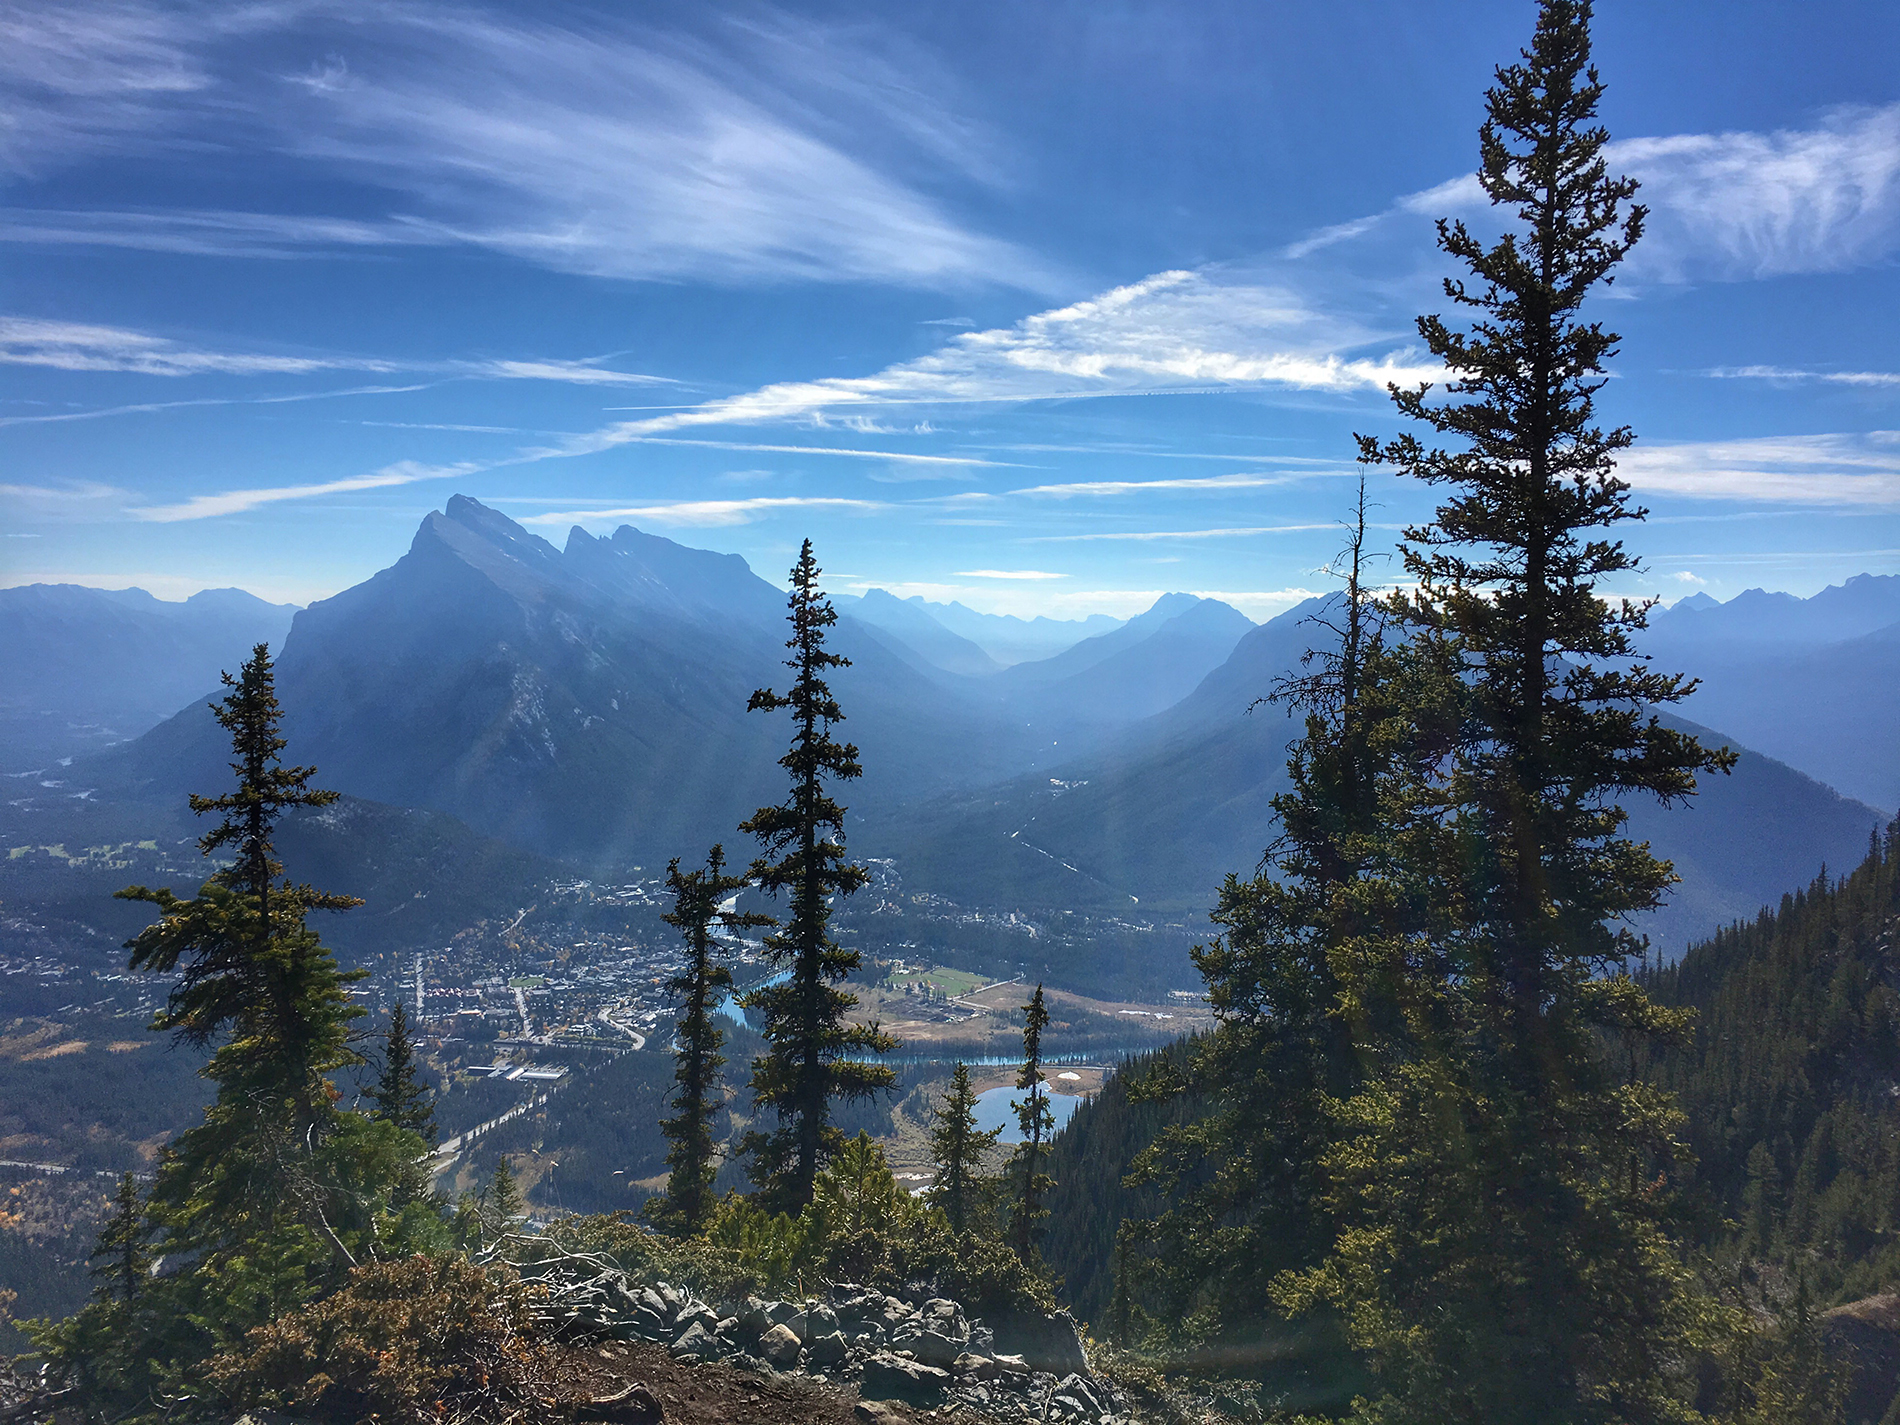 A view from the top of the ski lift at Mt. Norquay, Alberta, Canada